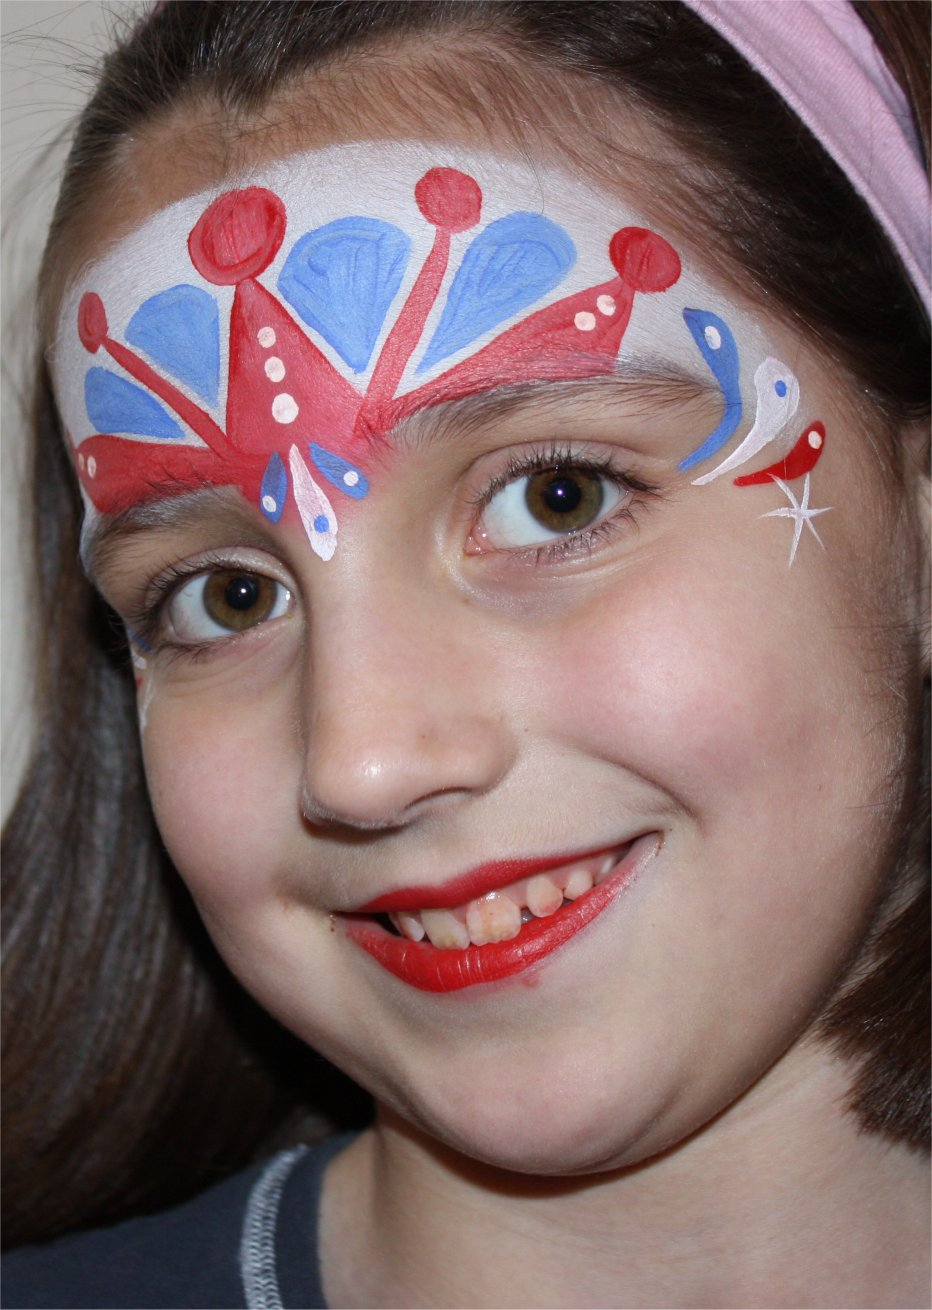 Uncategorized Cat Whiskers Face Paint helen cats whiskers happy new year face another huge event to hit the painting calendar this will of course be royal wedding so here are a few new